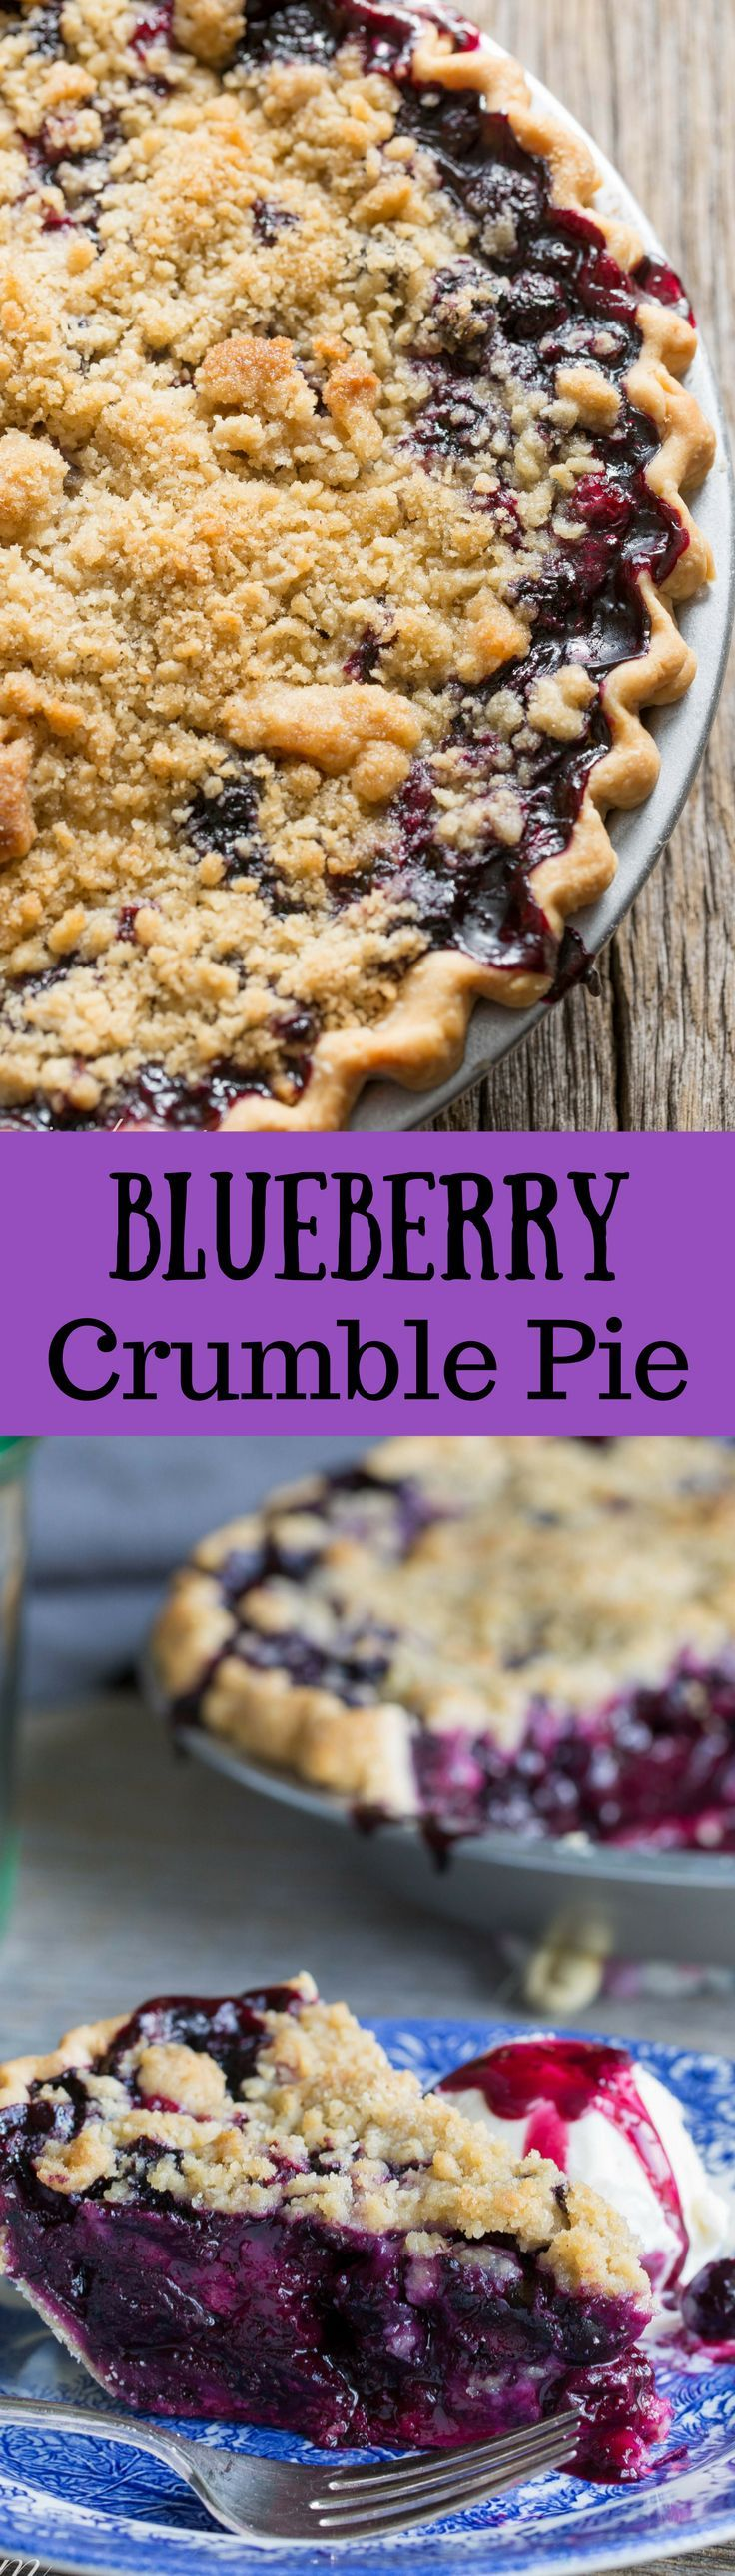 Blueberry Crumble Pie -Sweet blueberries topped with a crispy crumble all baked up in a wonderful summer pie. A must make for your ripe blueberries!  www.savingdessert.com